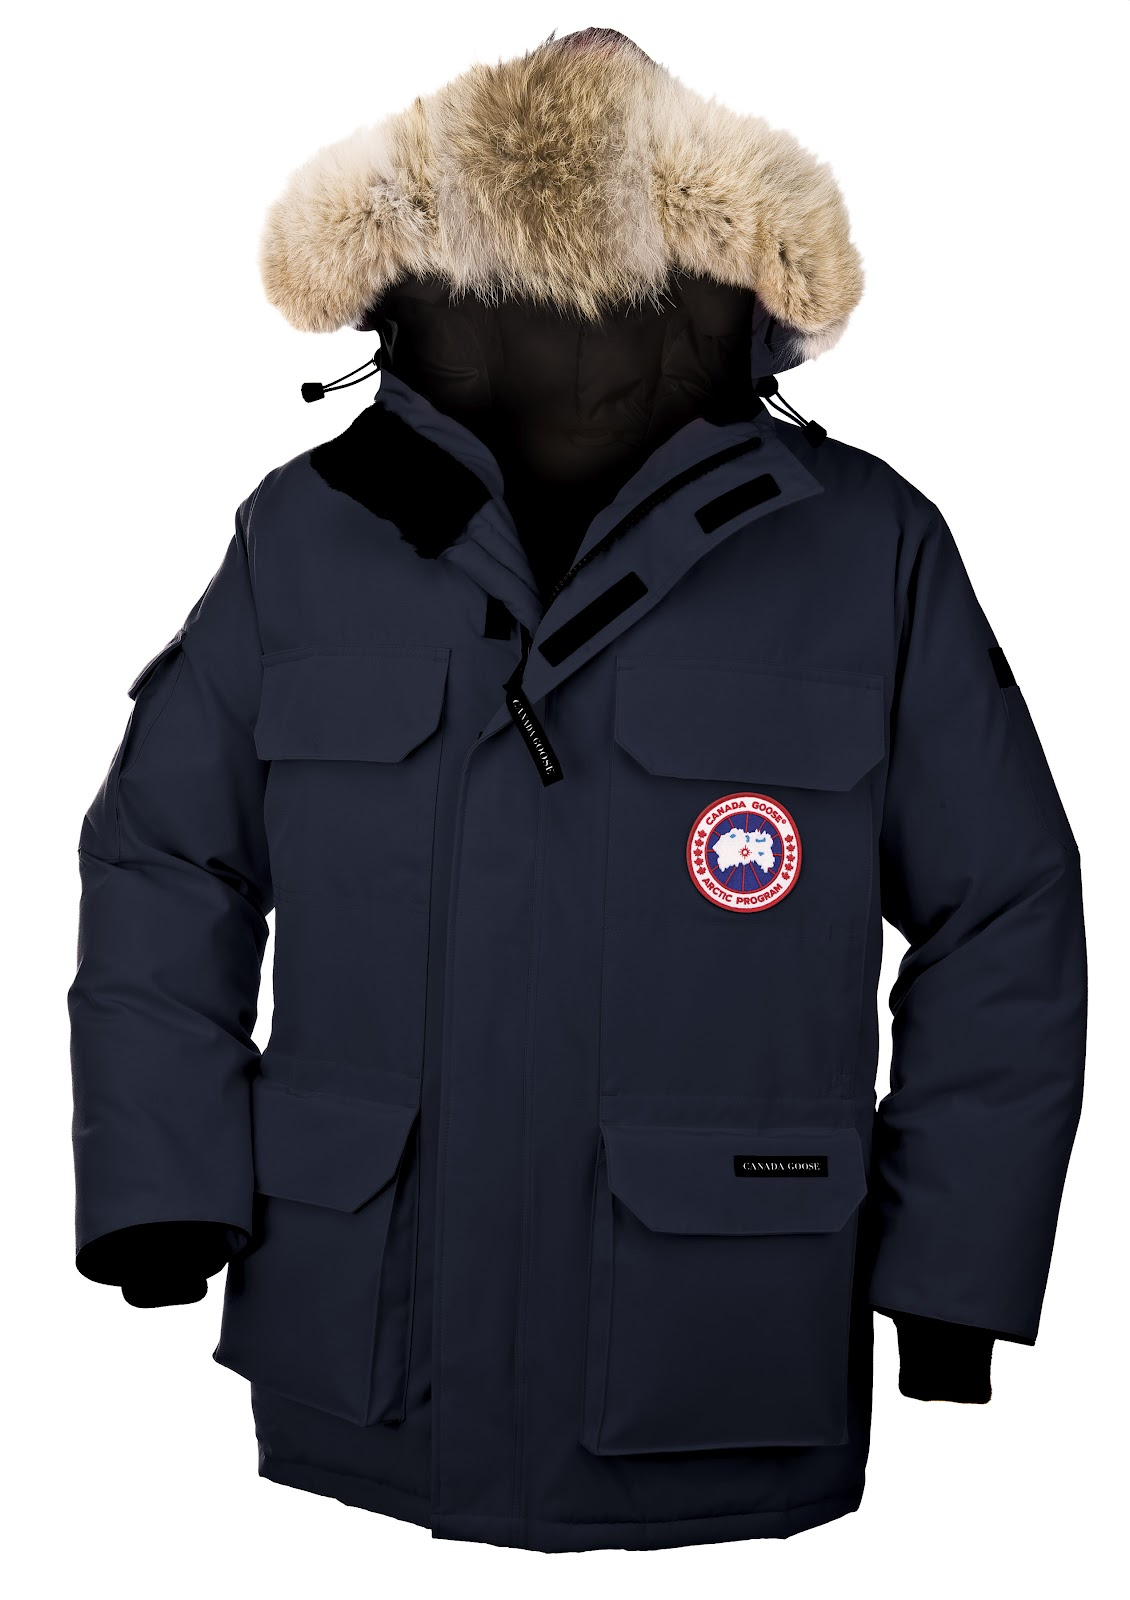 14 oz. berlin blog: CANADA GOOSE >>> BRAVE THE ELEMENTS